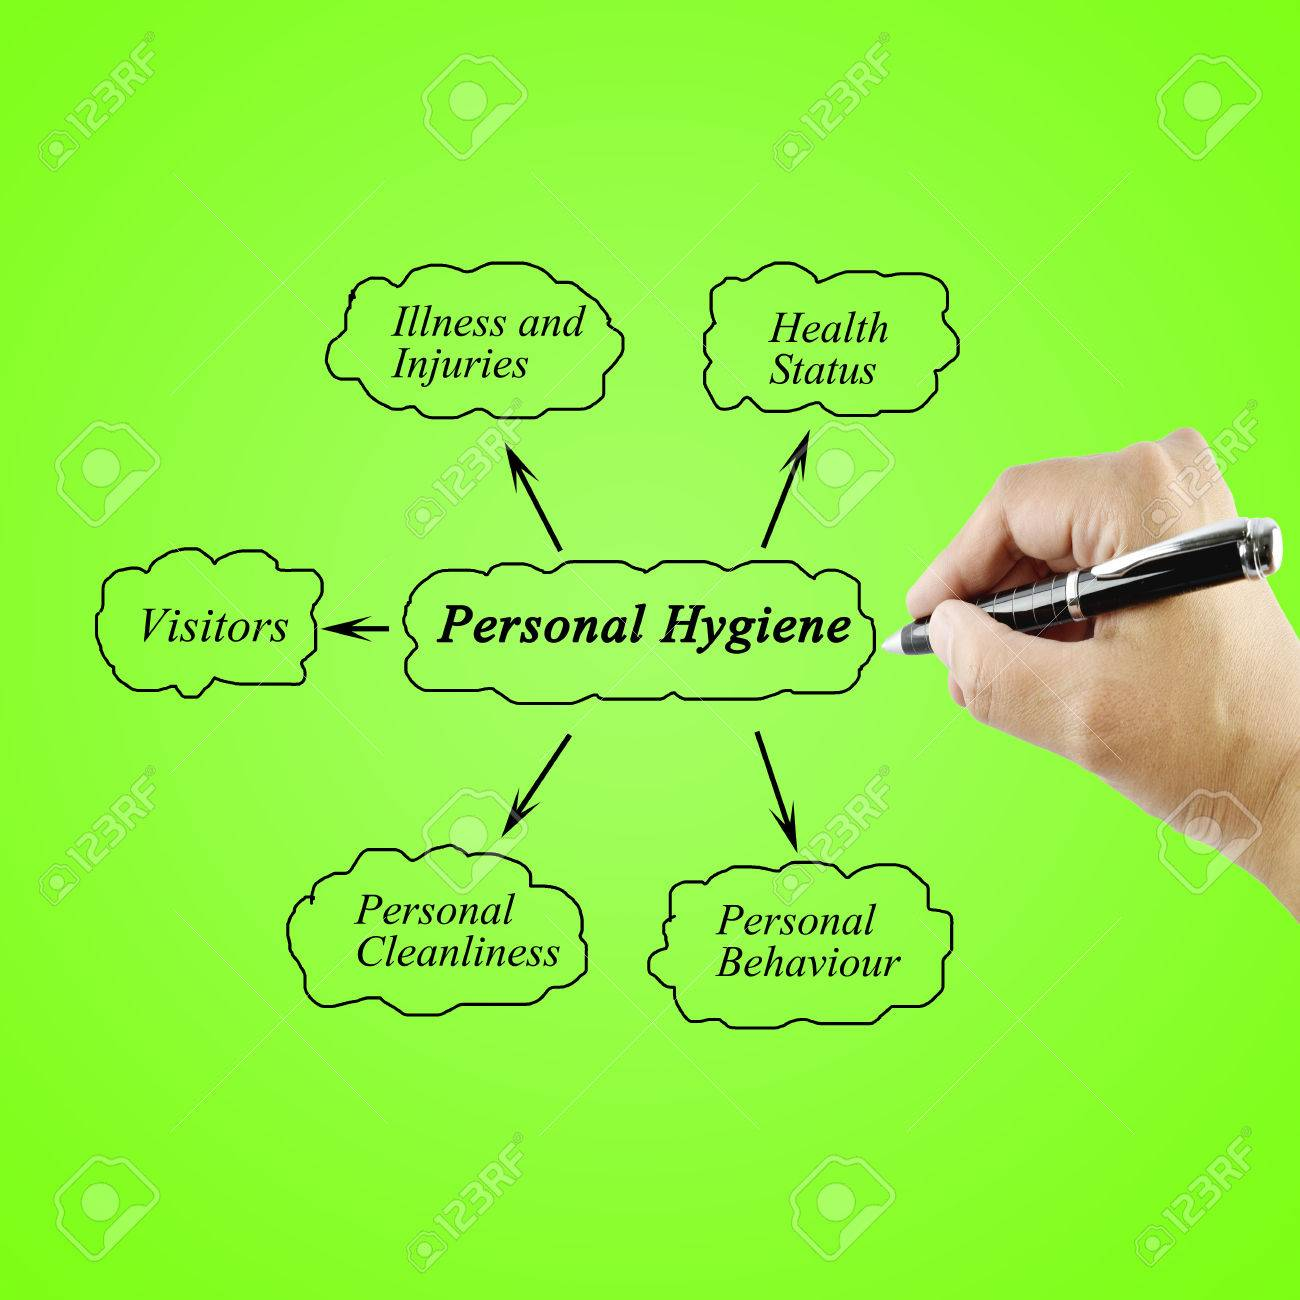 Personal Hygiene Drawing at GetDrawings.com | Free for personal use ...